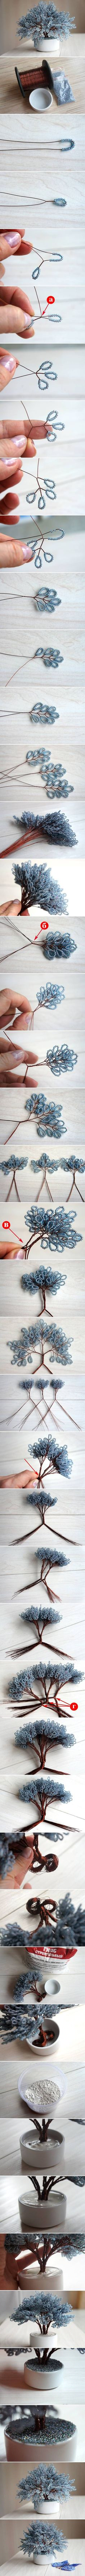 DIY Miniature Tree of Beads --- BEAUTIFUL